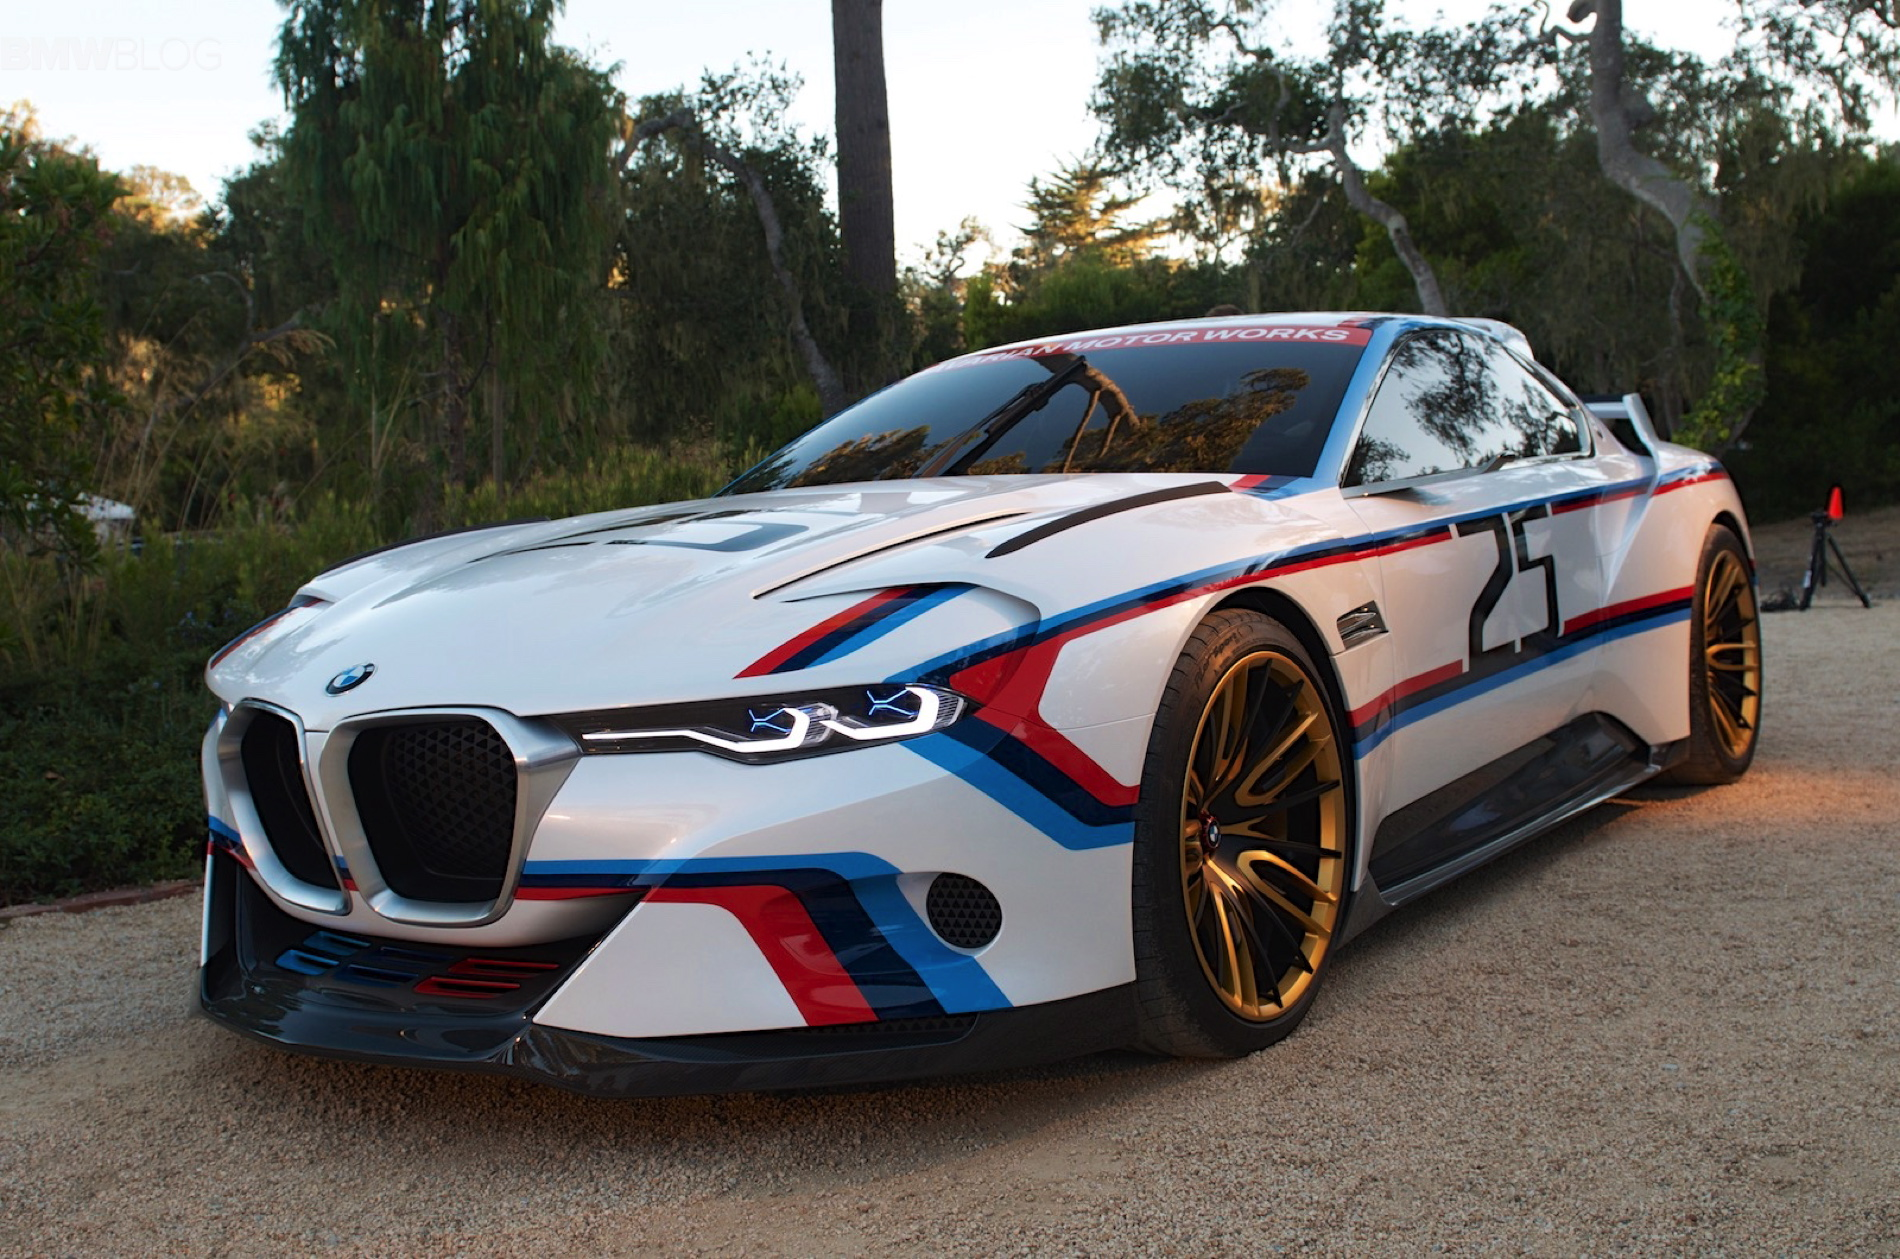 BMW should make the 3.0 CSL Hommage